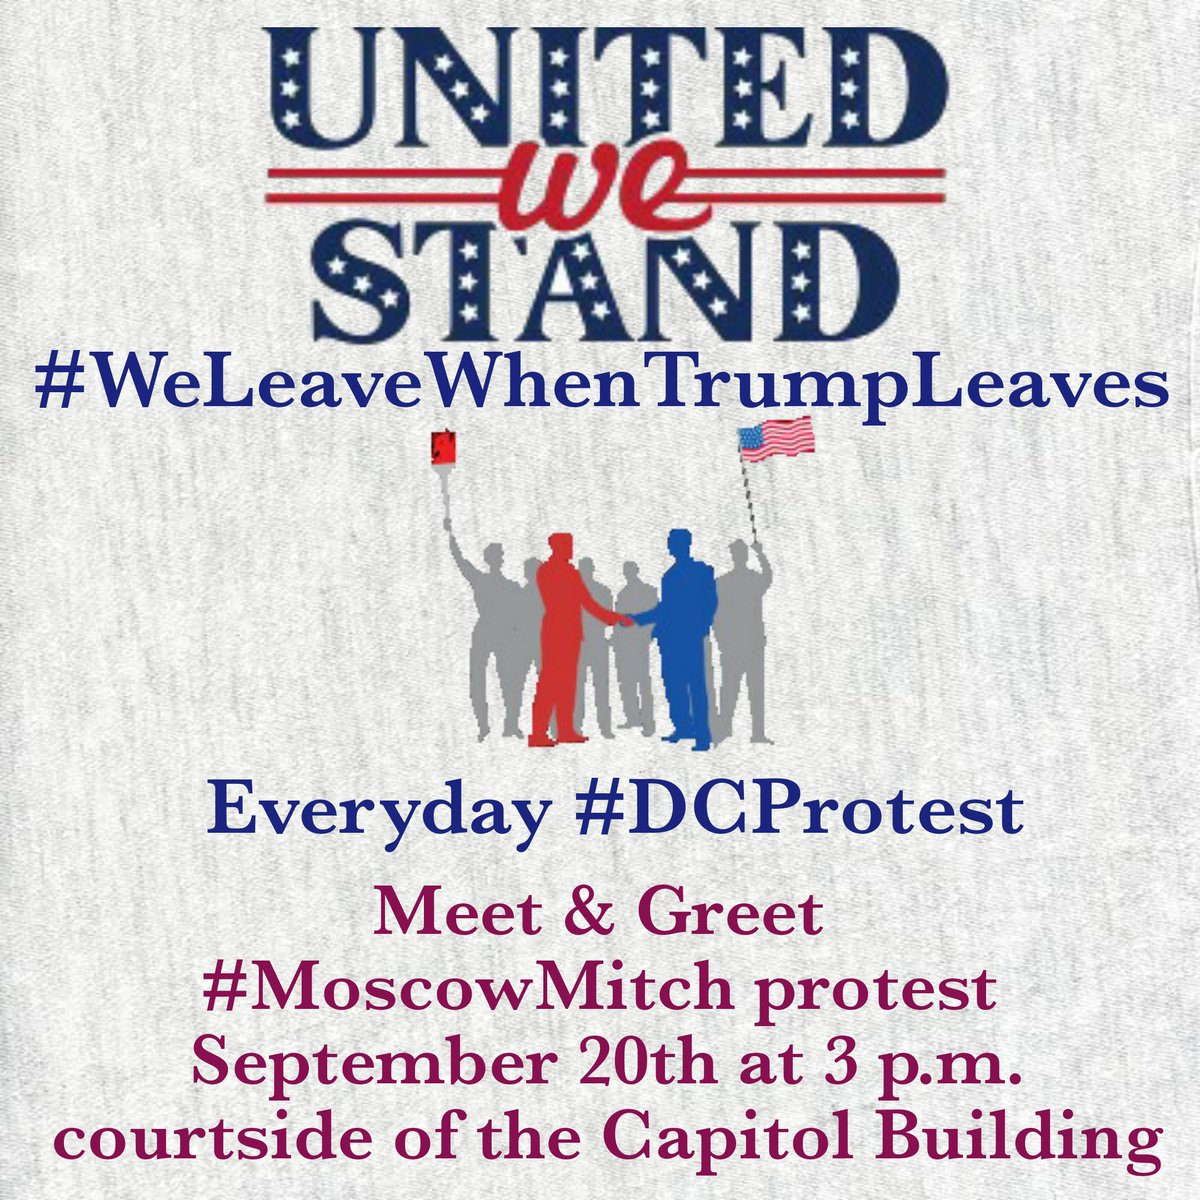 Resisters can we help this resister get to that 3k goal and more please @Doc_Cee #WeLeaveWhenTrumpLeaves